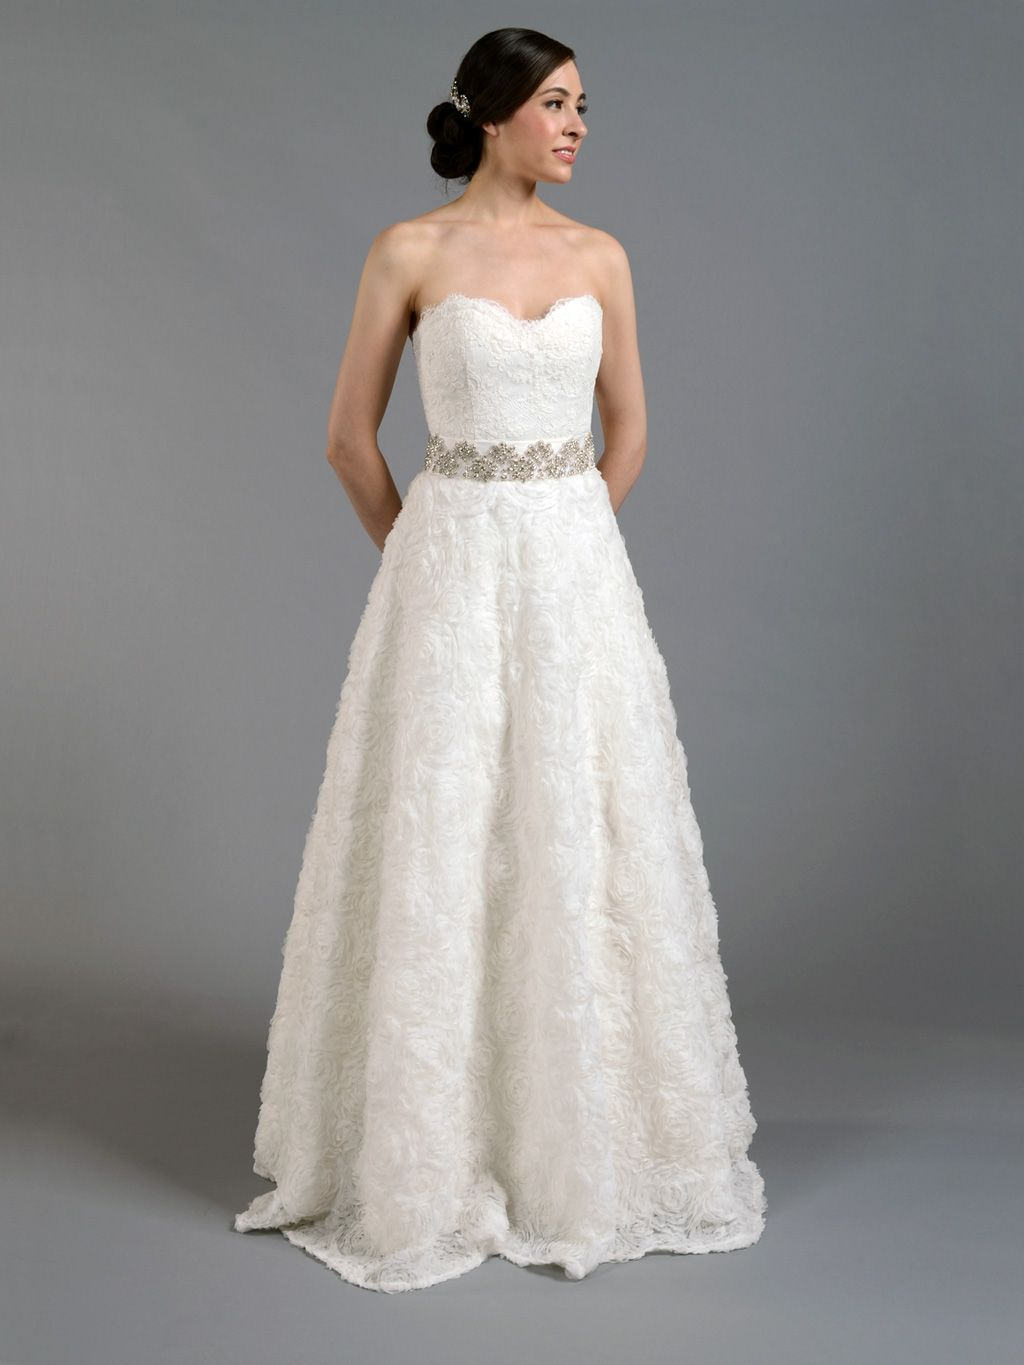 Ivory Strapless Lace Wedding Dress With Rosette Skirt 499 99